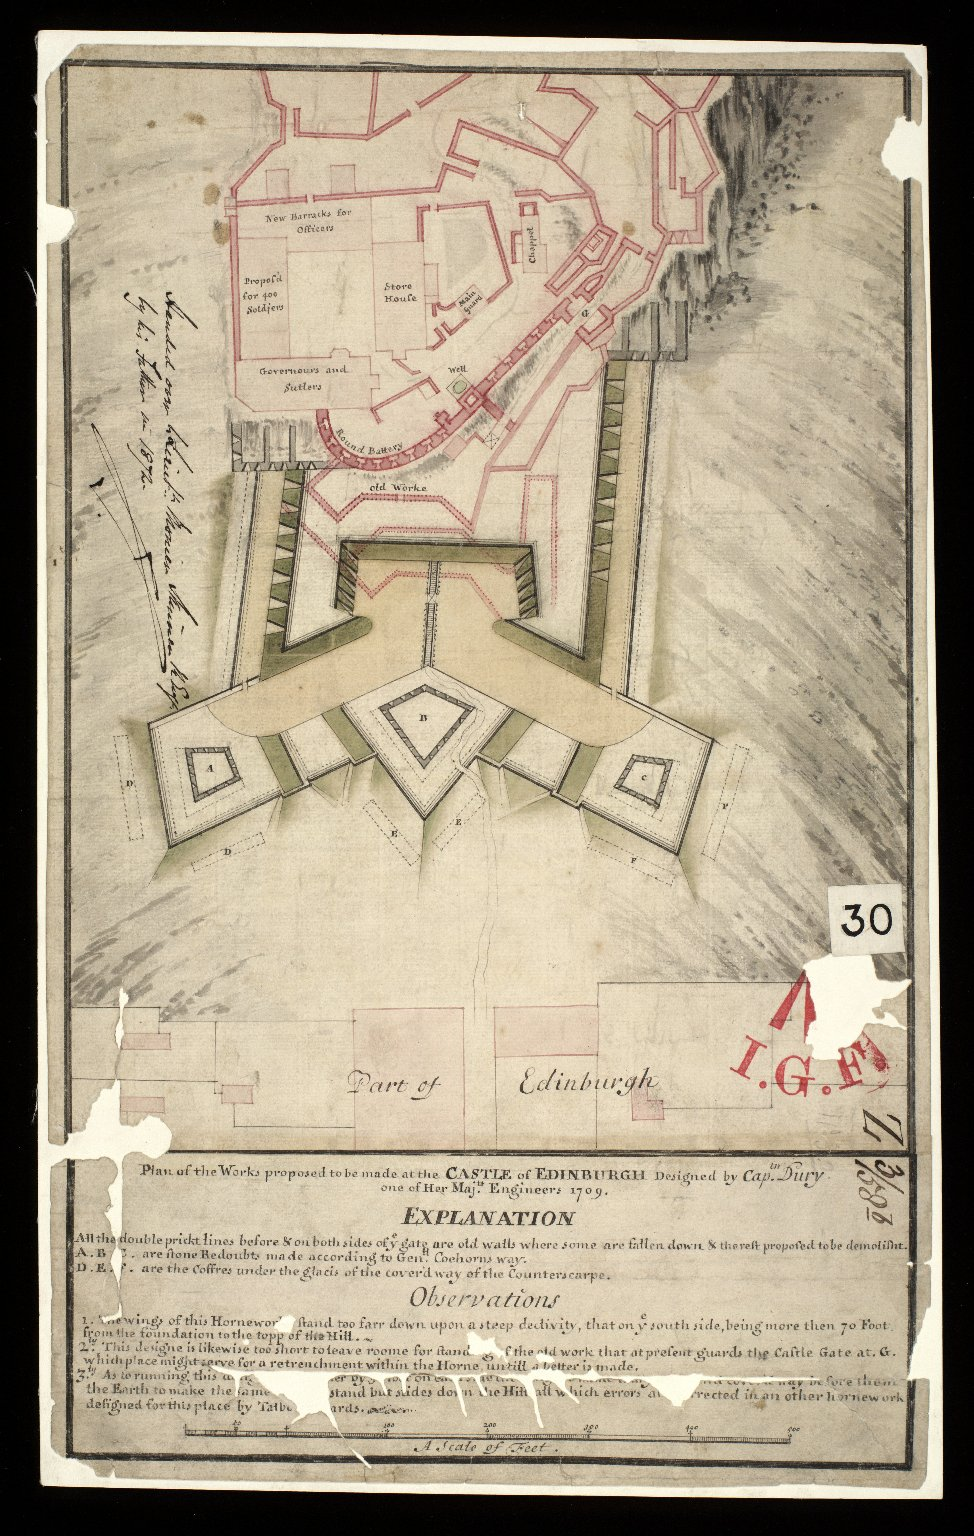 Plan of the works proposed to be made at the castle of Edinburgh [1 of 1]